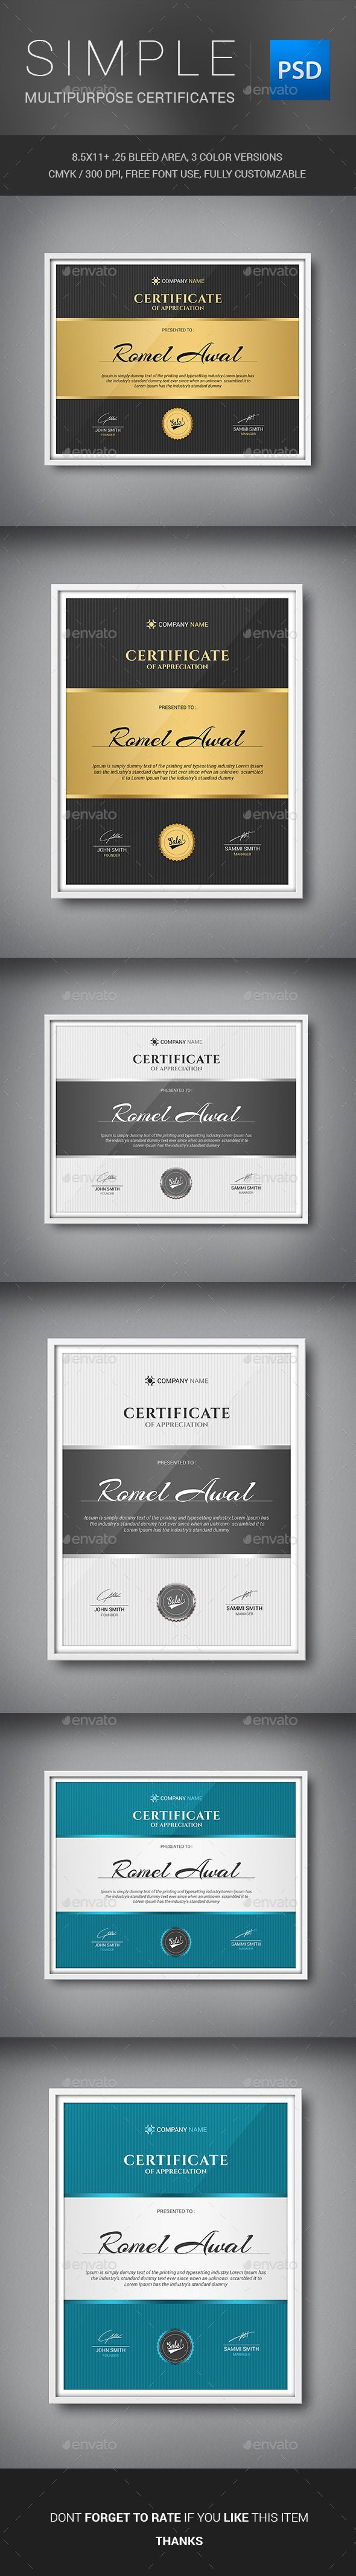 Simple Multipurpose Certificates Template PSD. Download here: http://graphicriver.net/item/simple-multipurpose-certificates/11439238?ref=ksioks